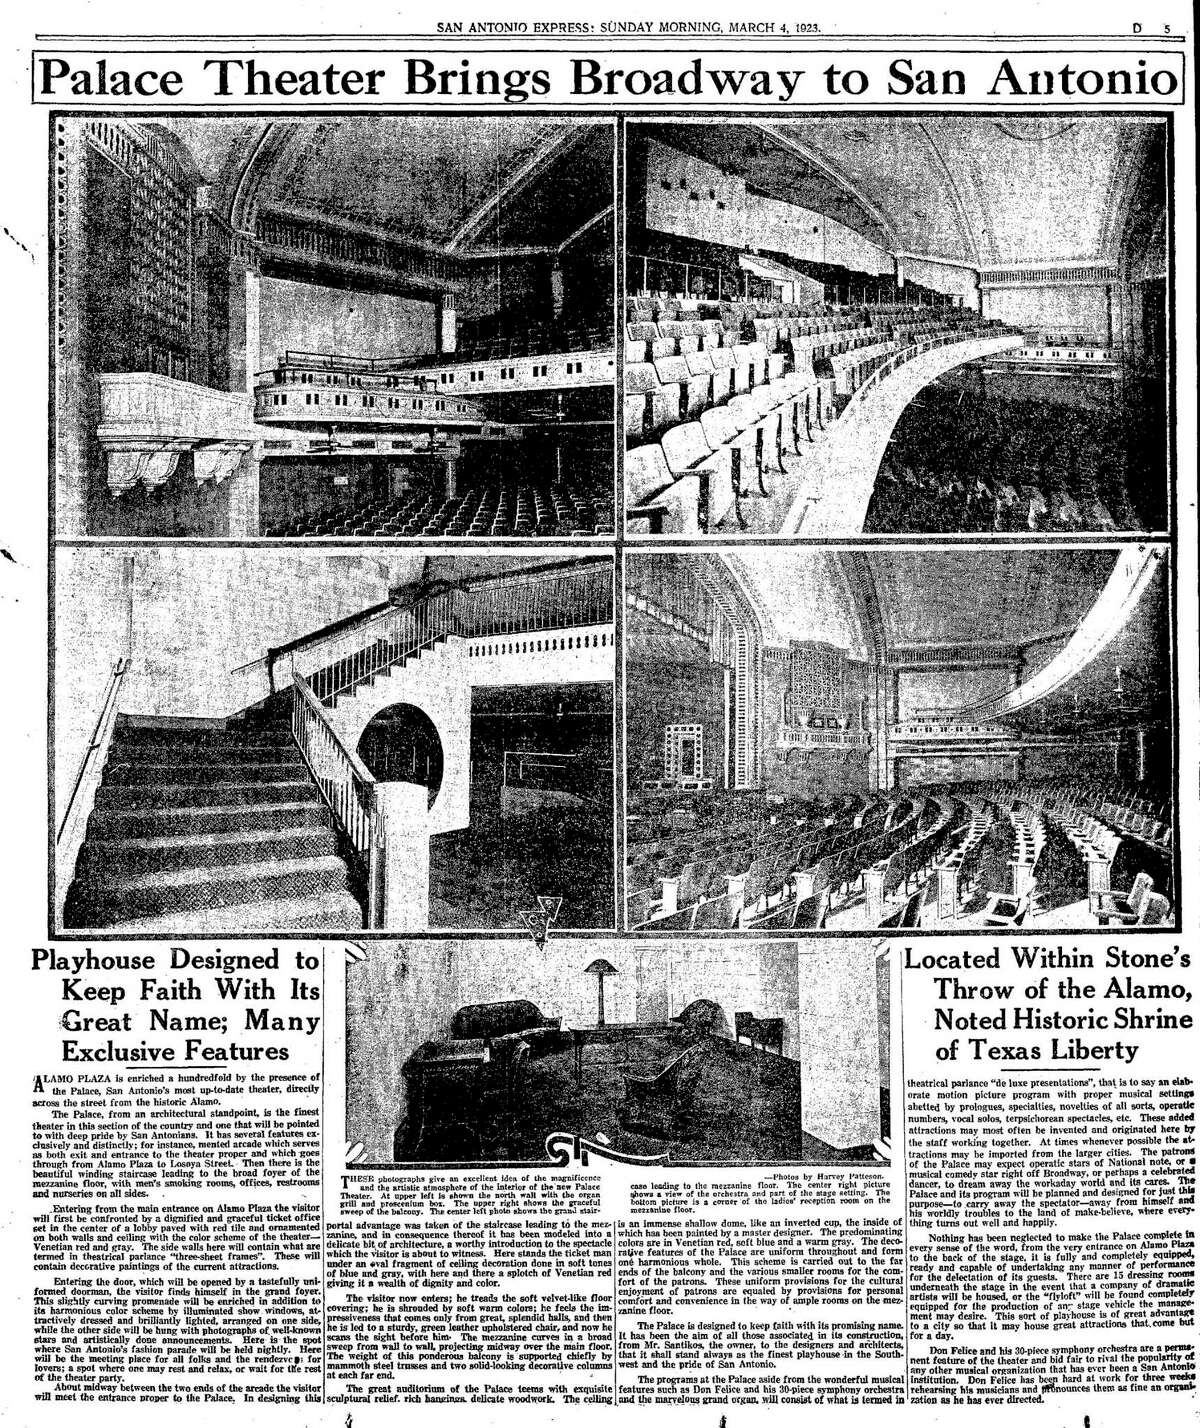 This special section of the San Antonio Express featured the opening of the Palace in 1923. The theater opened across the street from the Alamo and also had an entrance on Losoya Street.